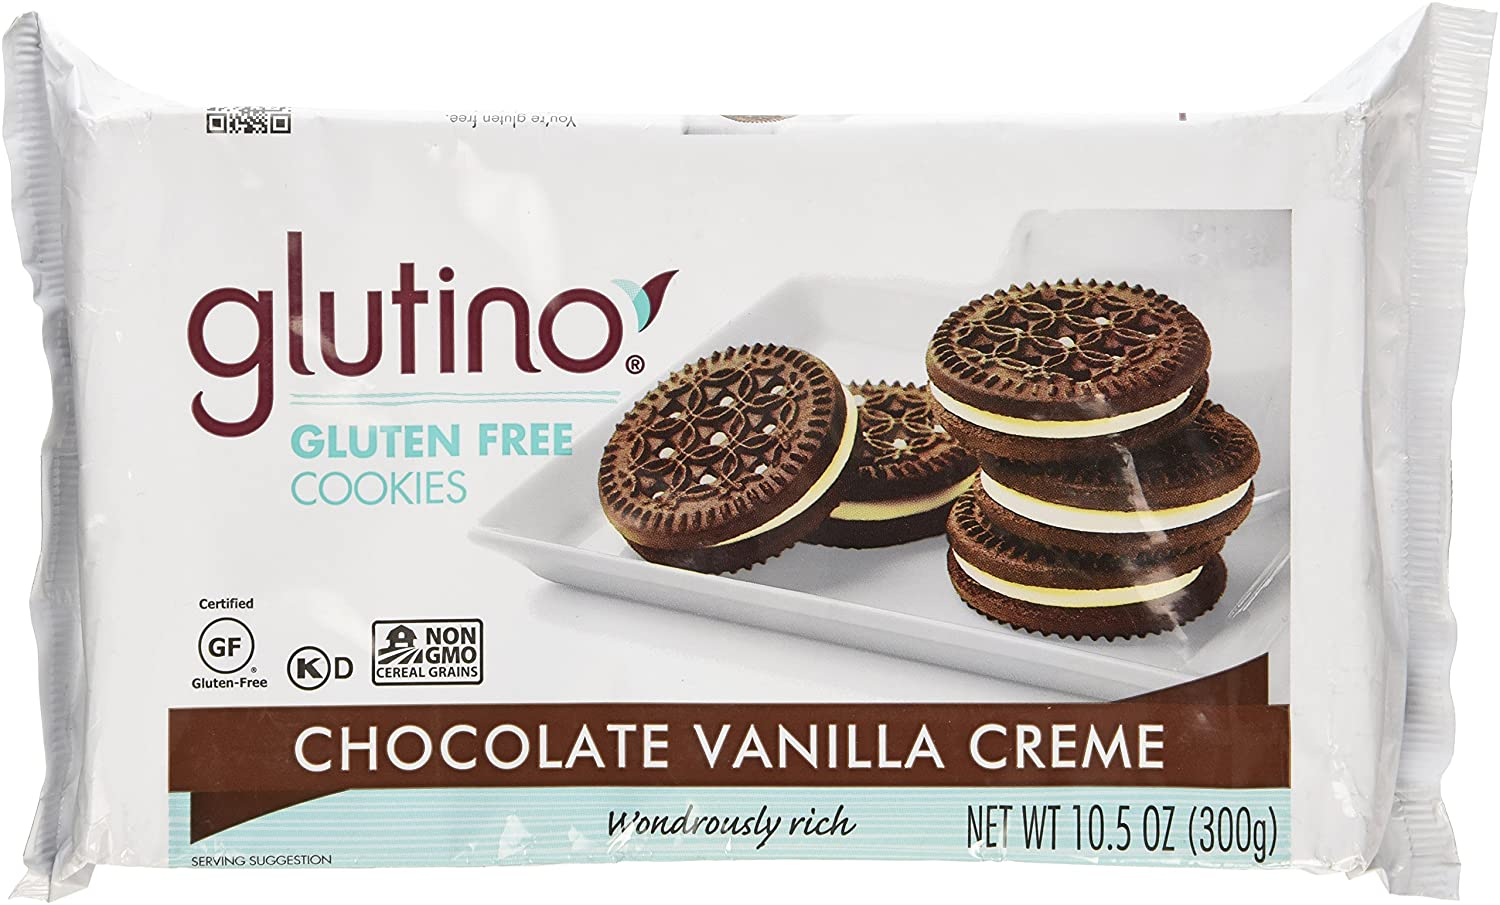 Glutino Chocolate Vanilla Cream Cookies, Gluten Free 10.5 OZ